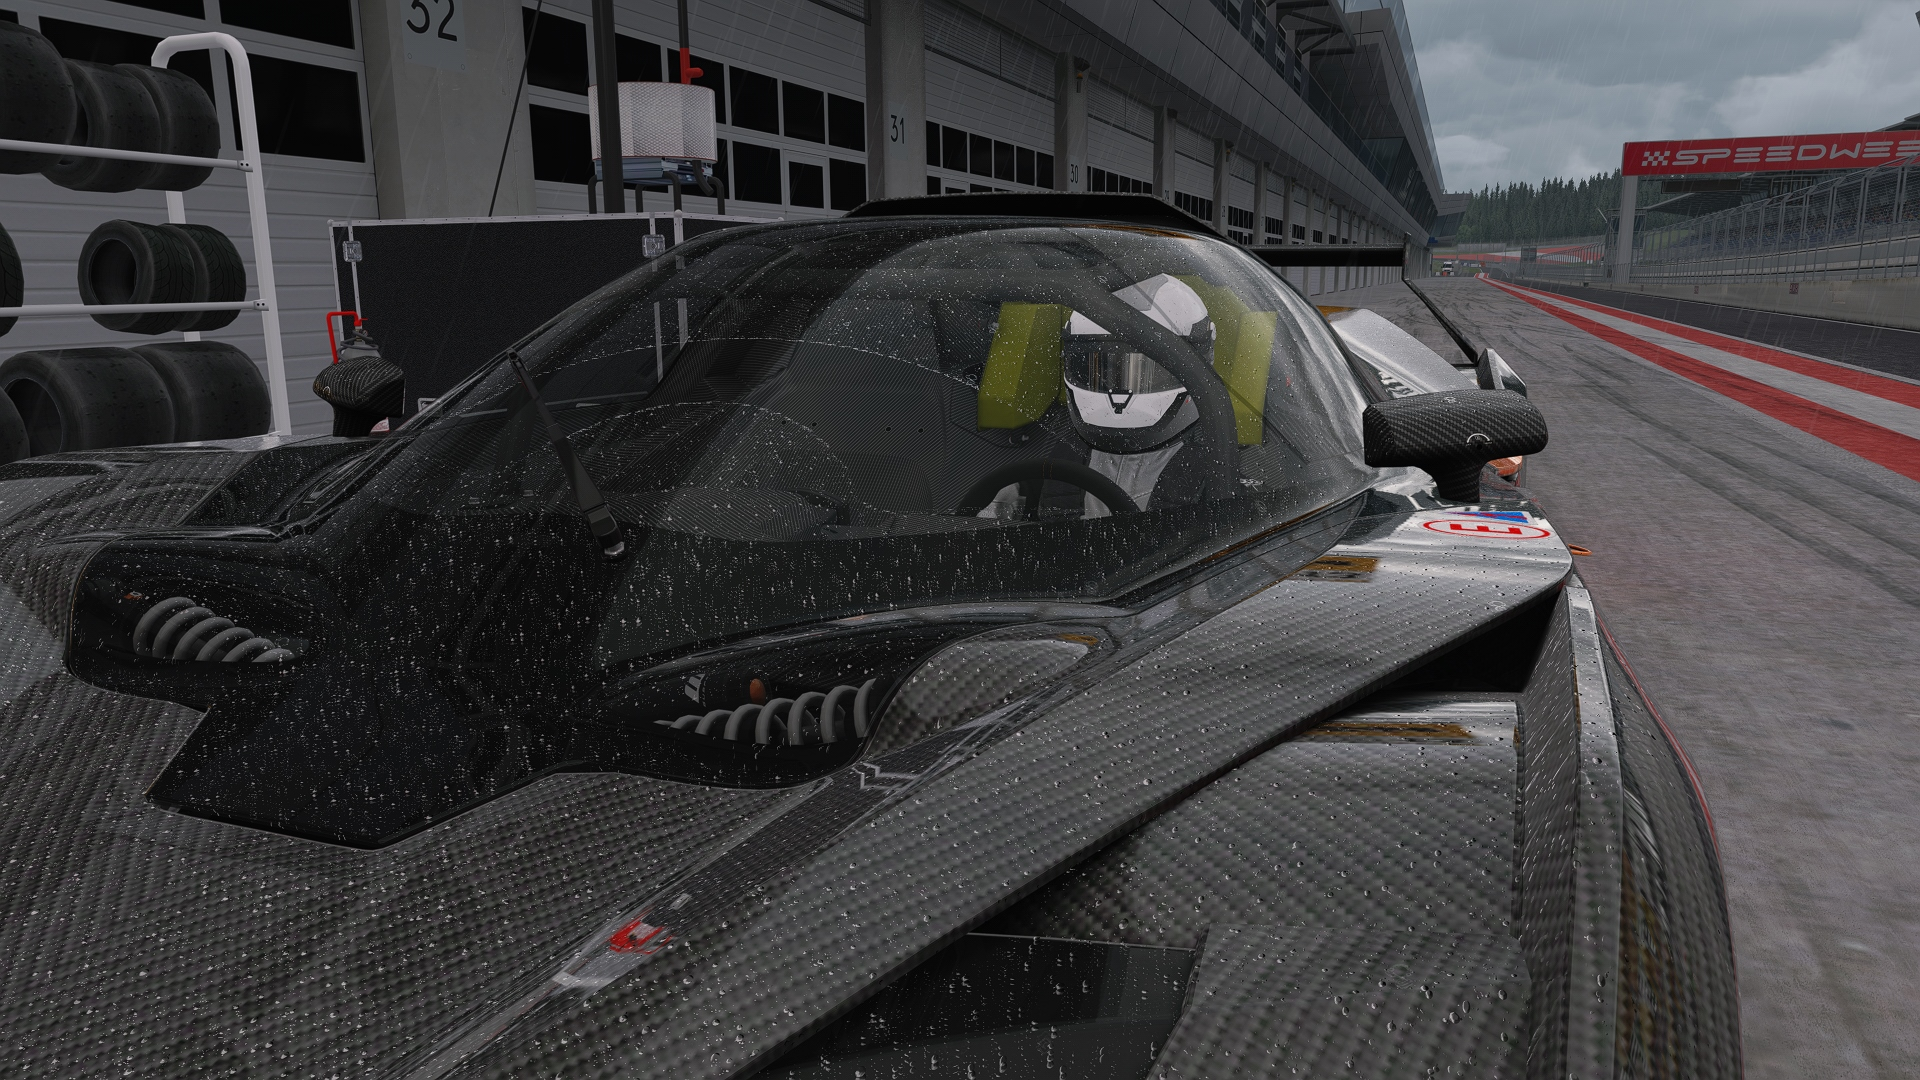 Screenshot_ks_ktm_xbow_gt4_ks_red_bull_ring_31-6-120-19-24-9.jpg